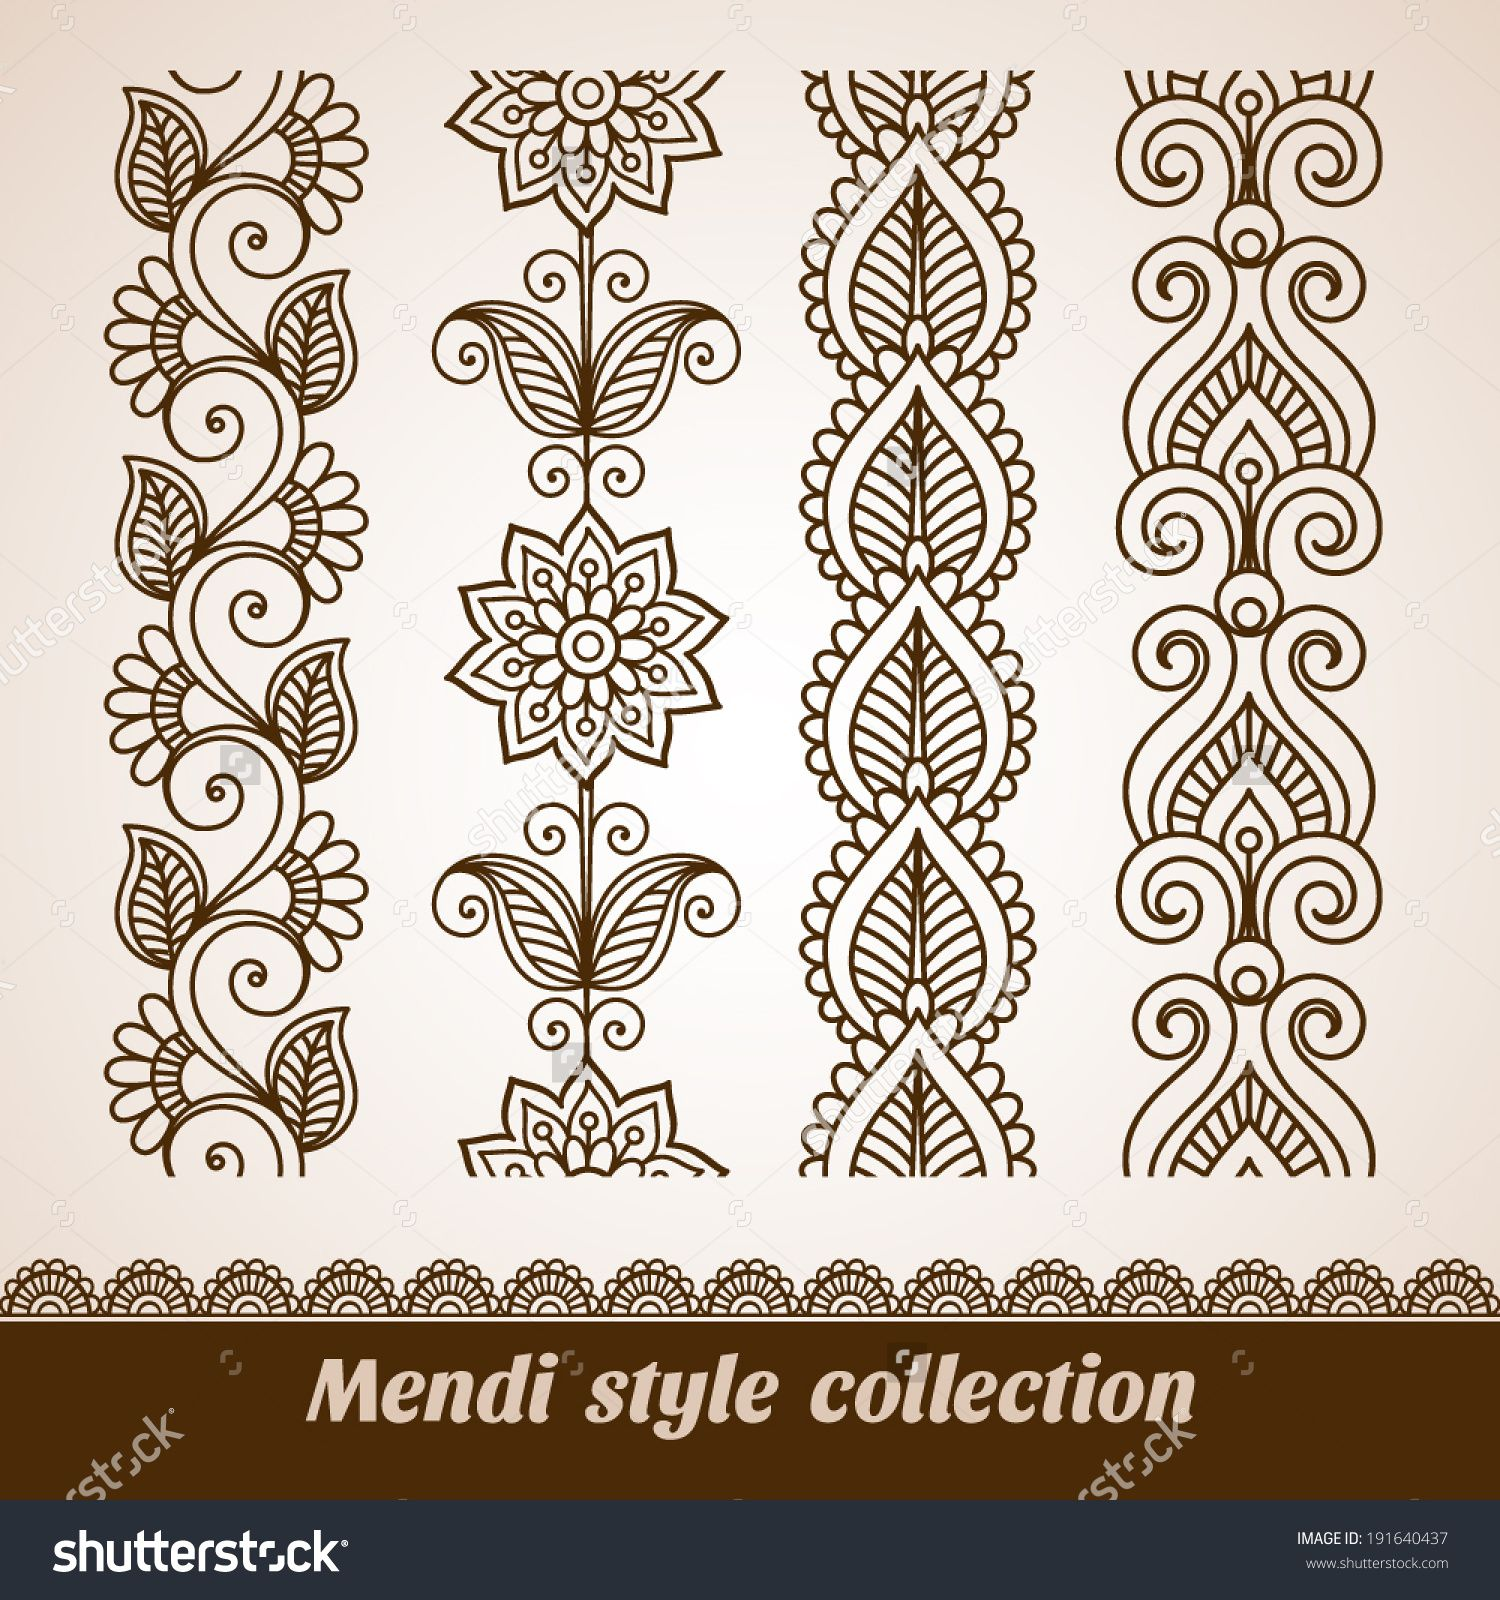 Ornamental Seamless Borders Vector Set With Abstract Floral Elements In